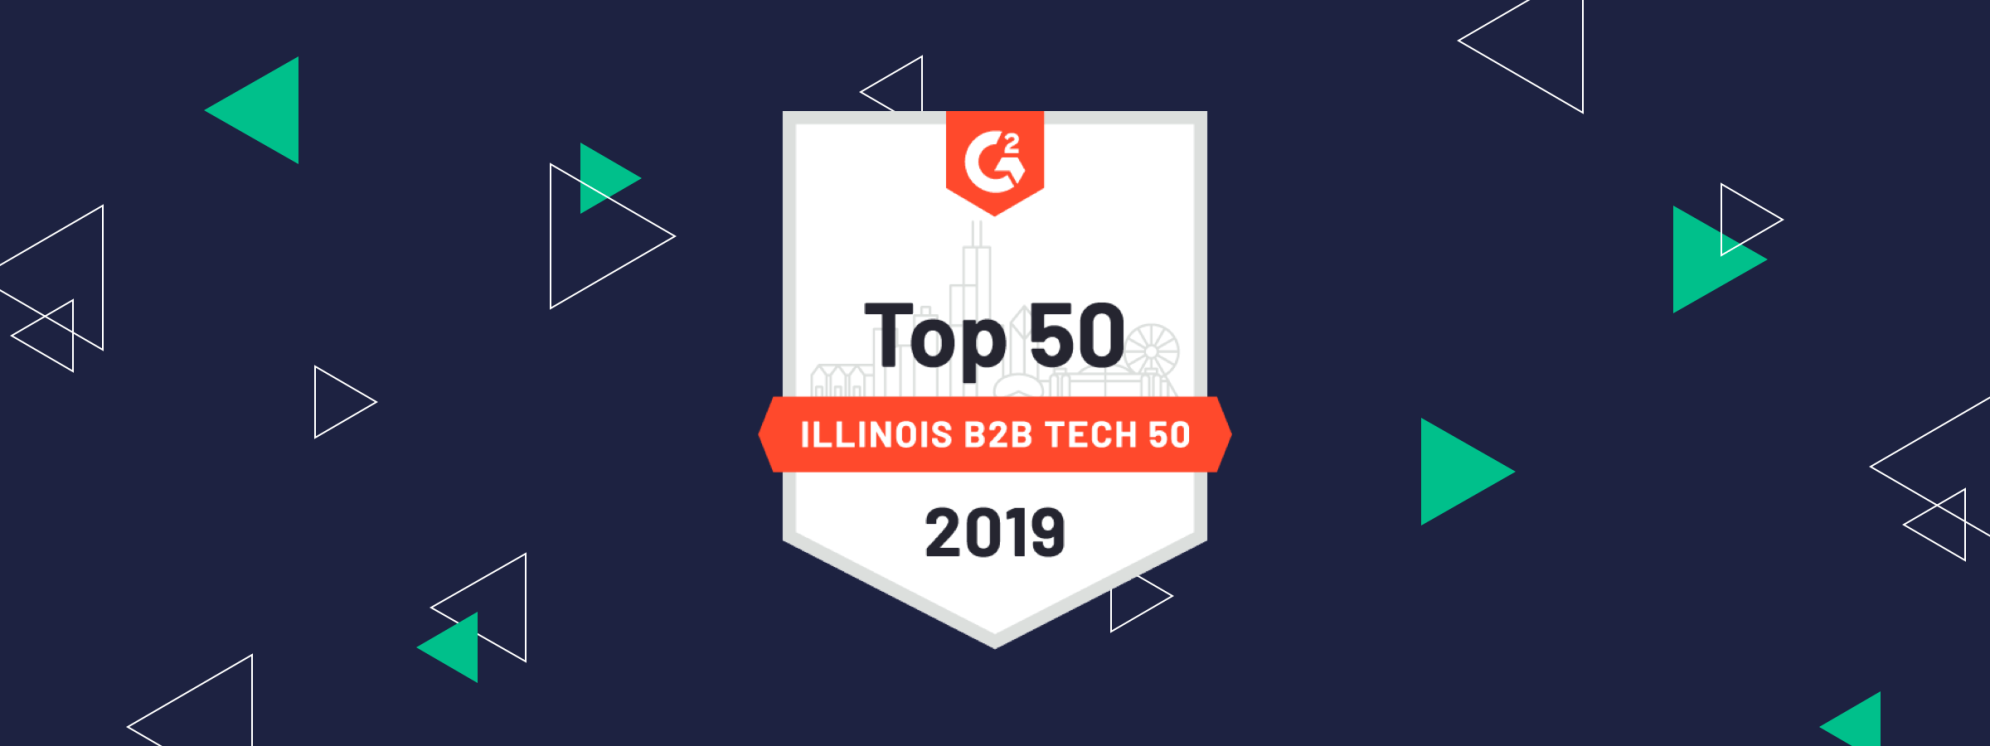 G2 Crowd Top 50 Illinois B2b Tech 50